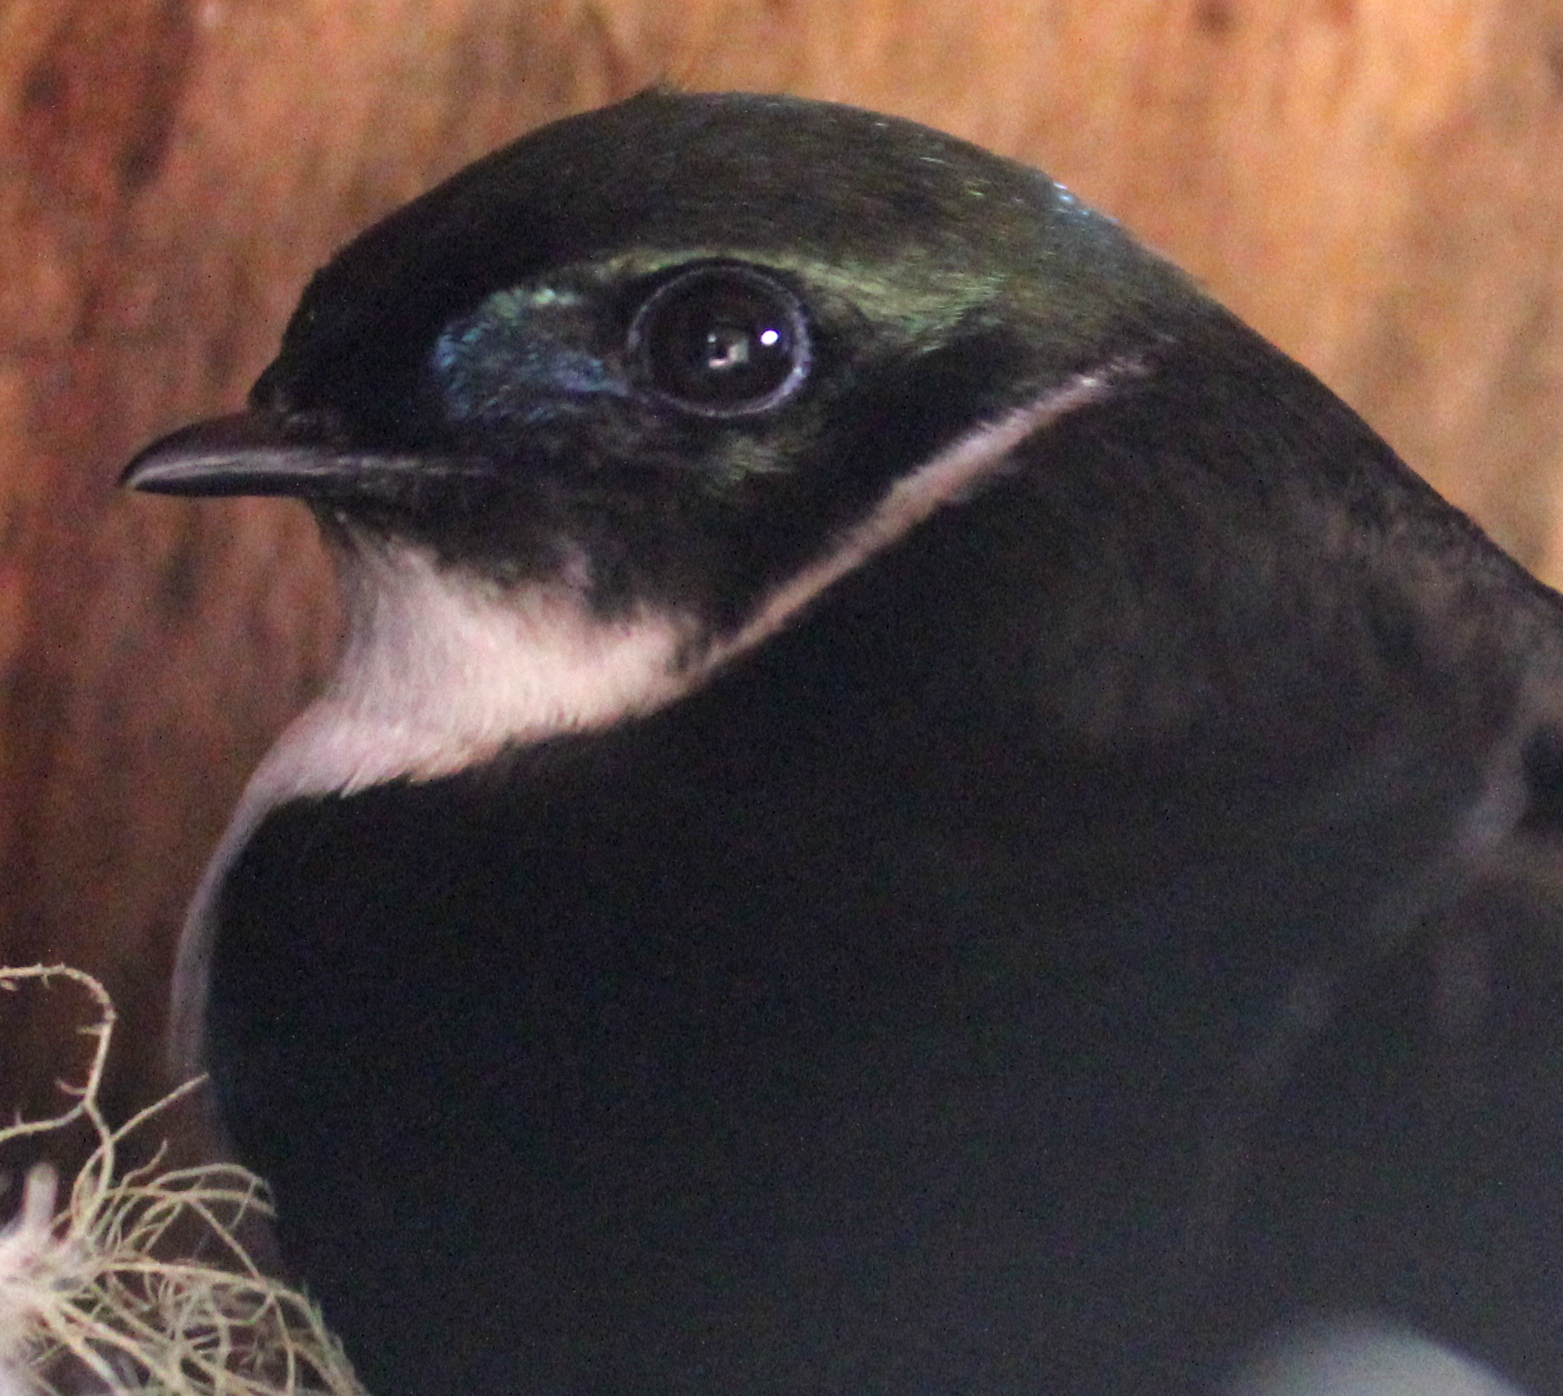 Female GOSW inside nest box